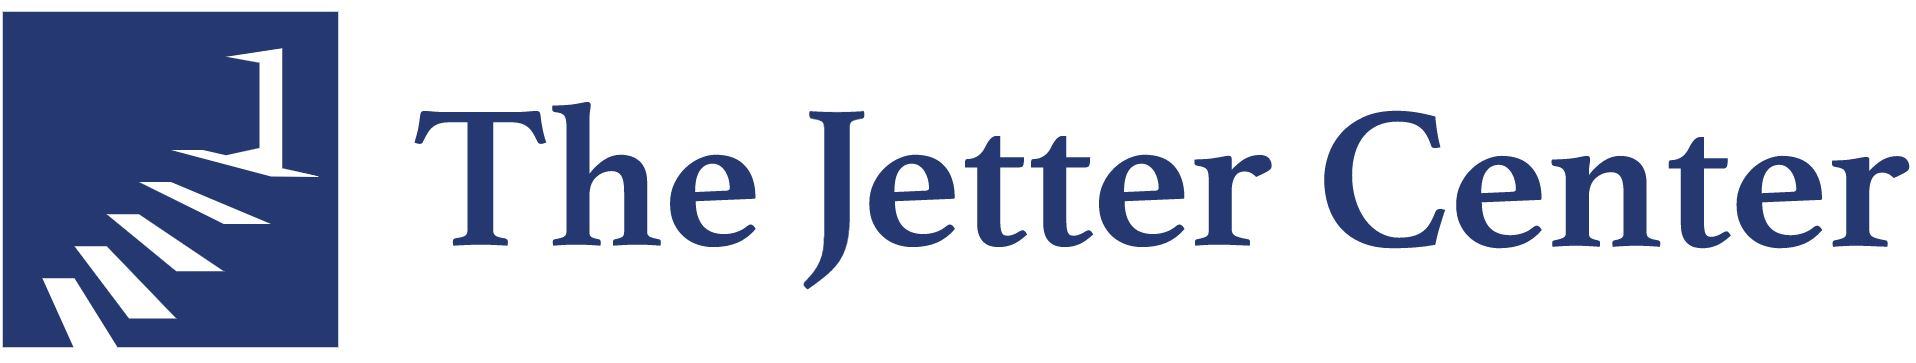 Jetter Center Logo.JPG